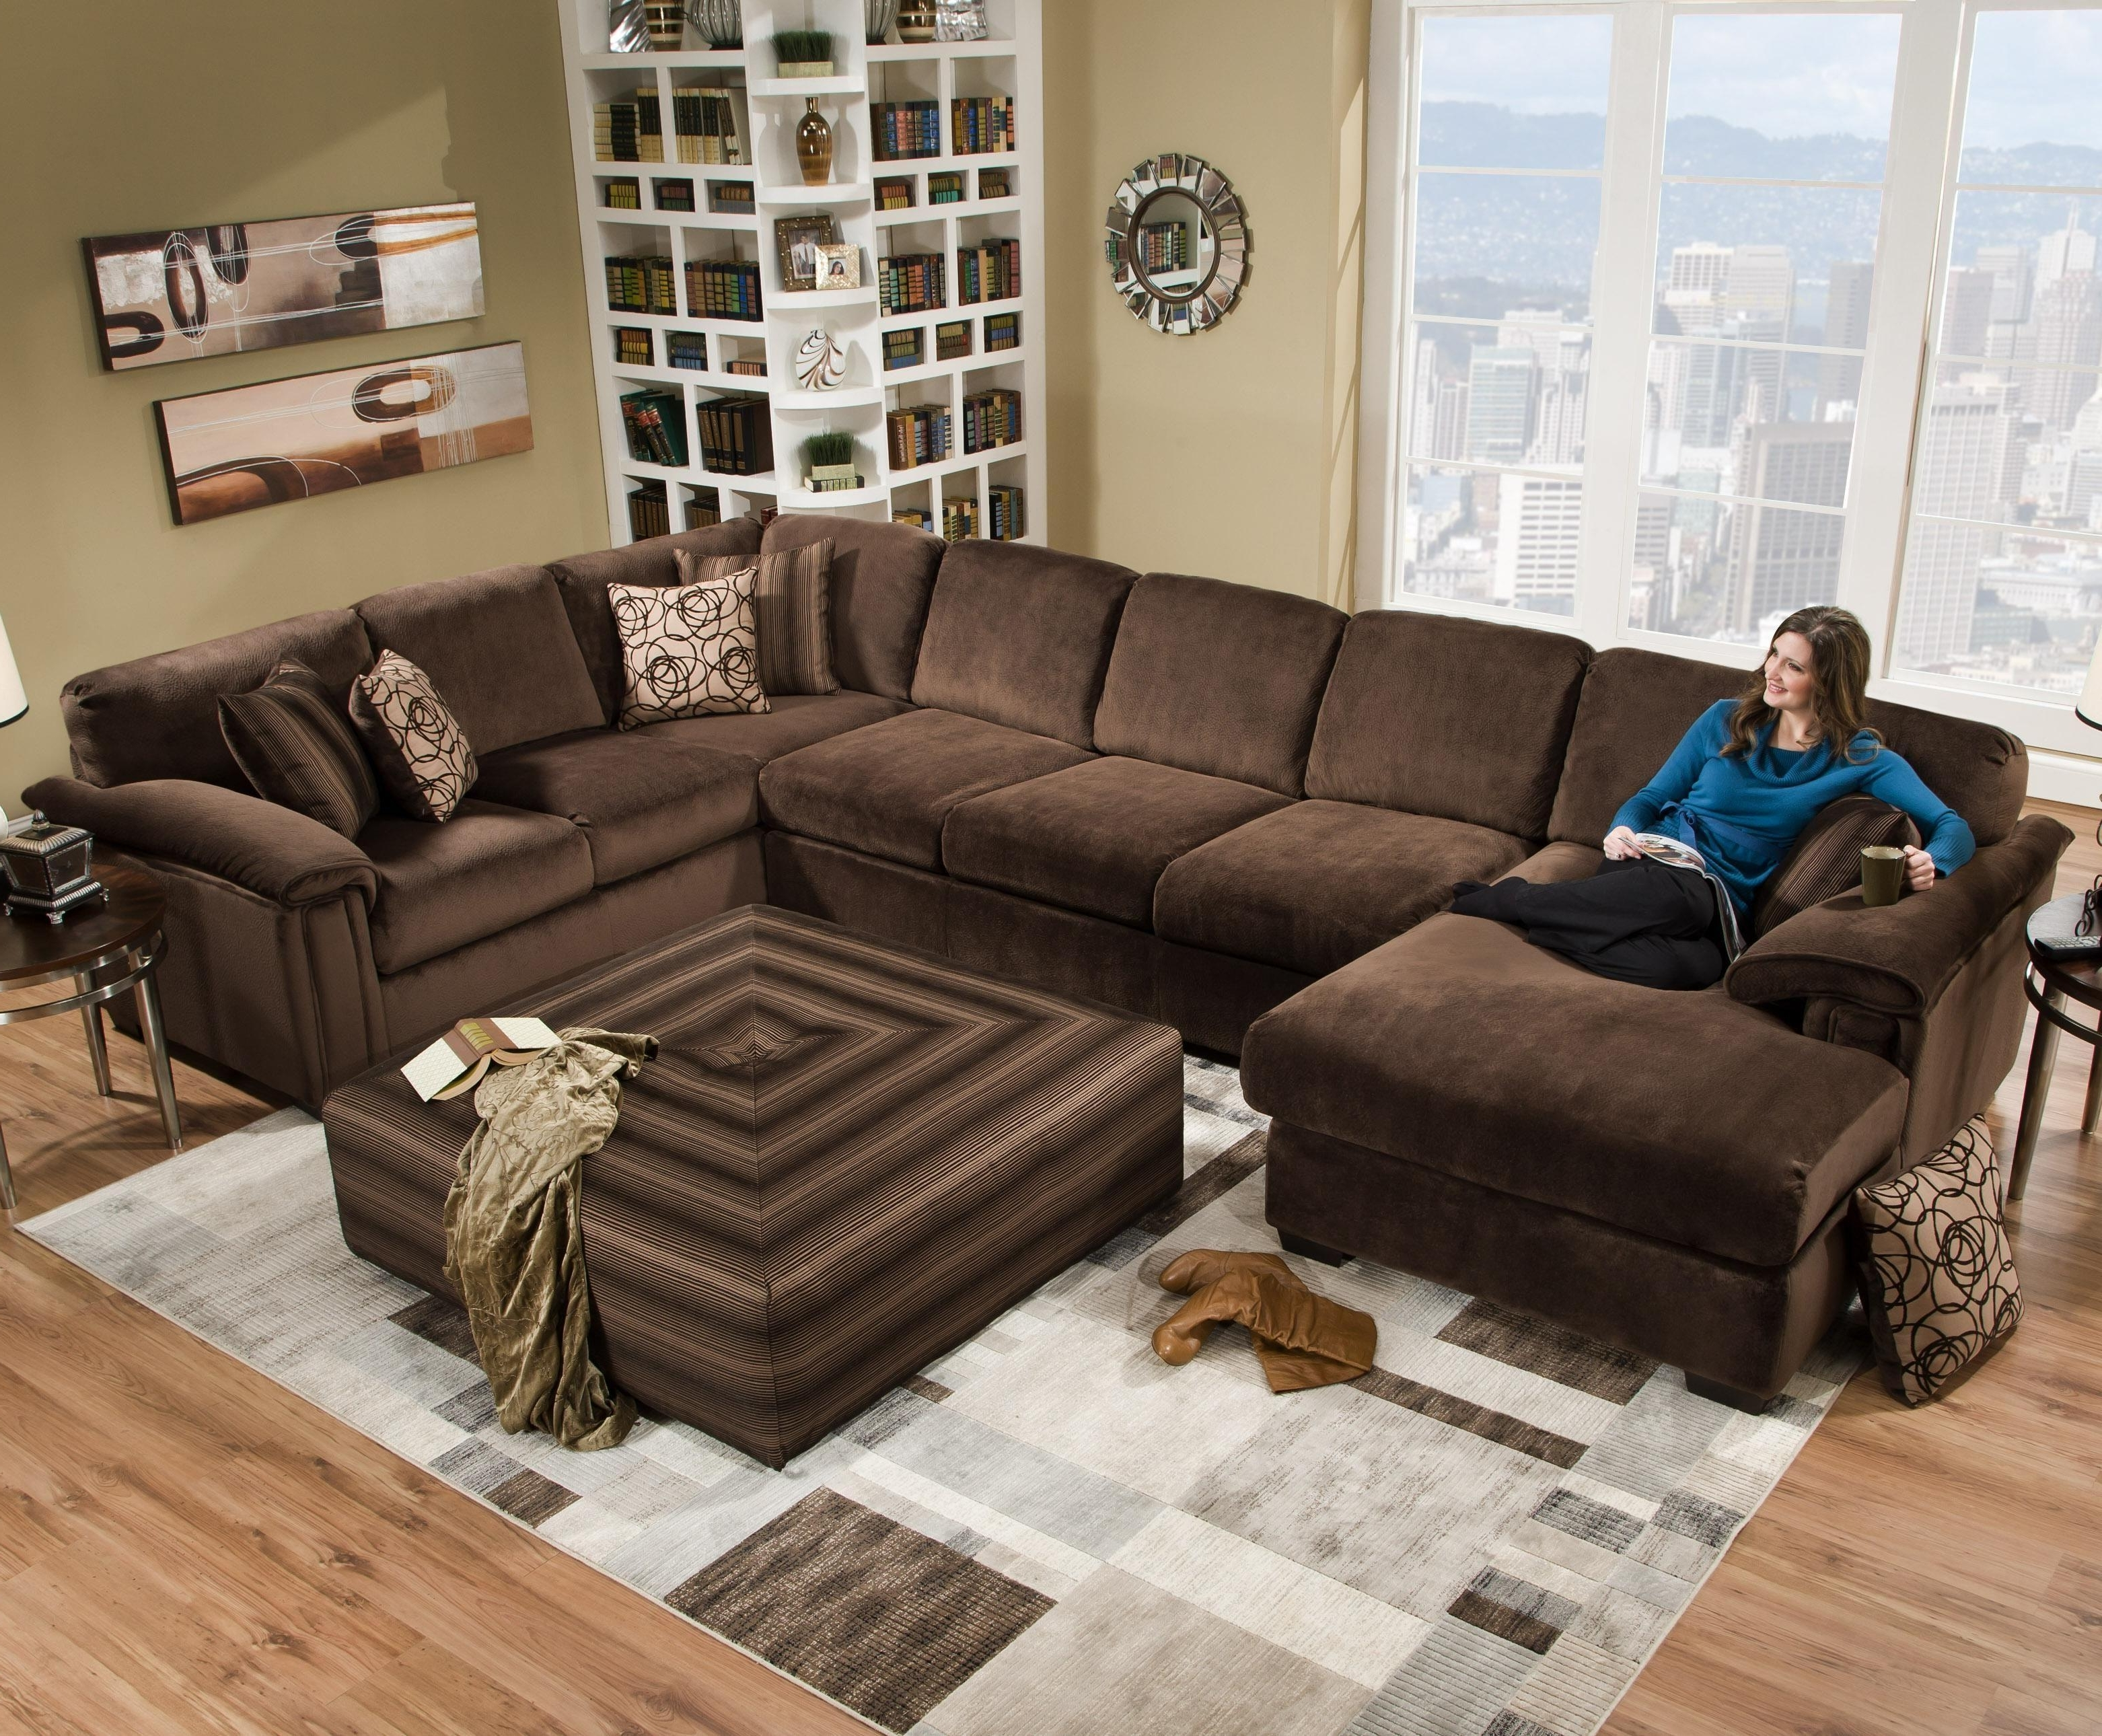 Furniture : Nebraska Furniture Mart Couches Lovely Six Person With Regard To Most Popular Nebraska Furniture Mart Sectional Sofas (View 7 of 20)